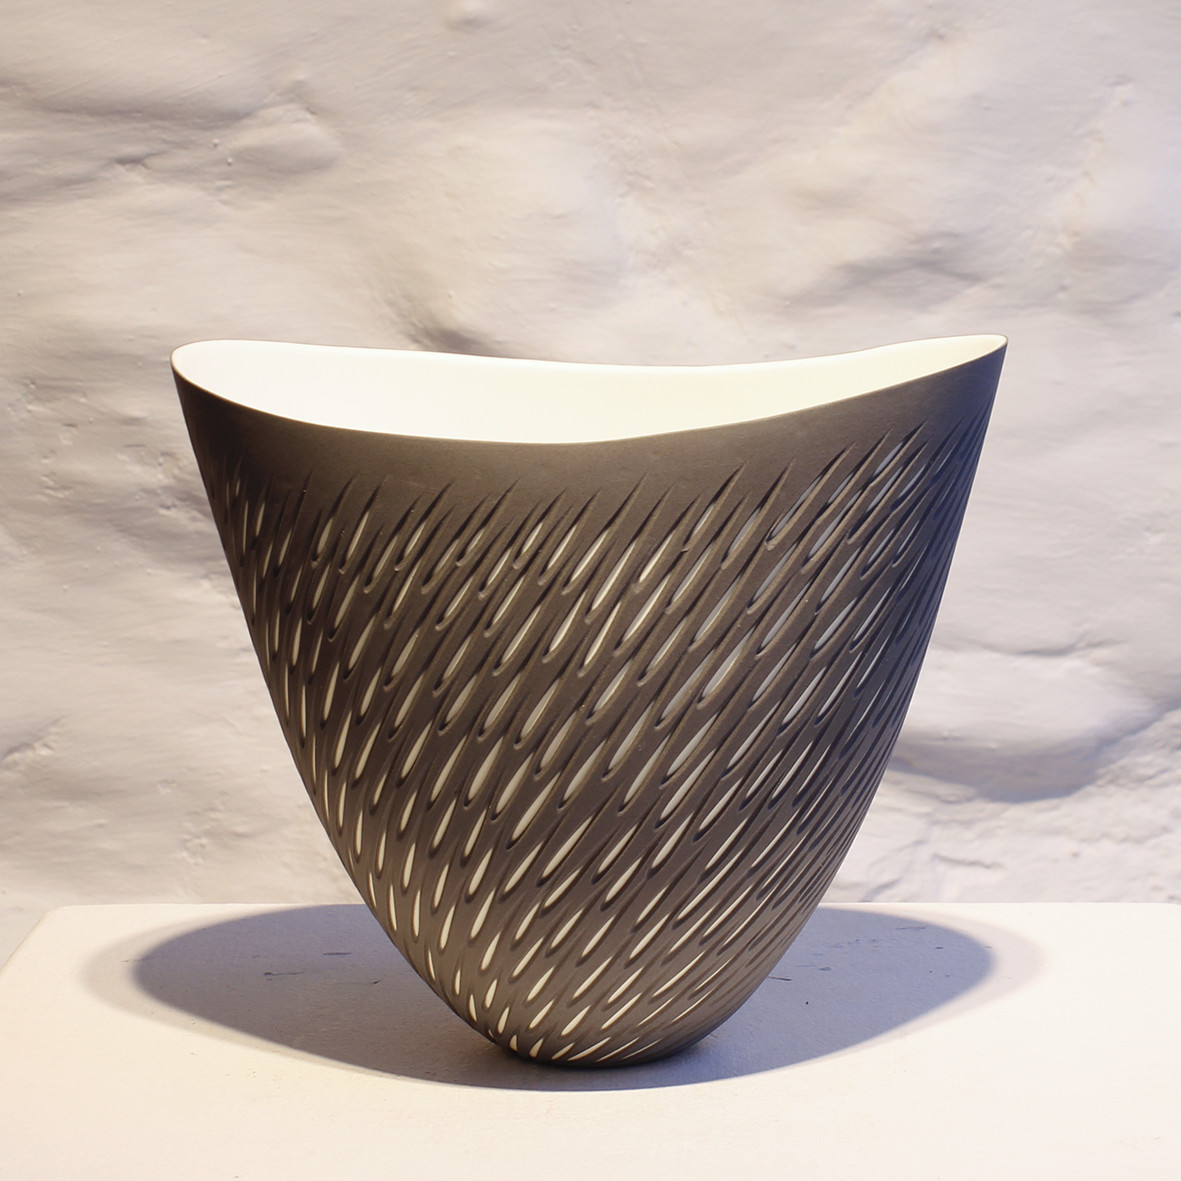 "<span class=""link fancybox-details-link""><a href=""/artists/60-sasha-wardell/works/6016-sasha-wardell-tall-shoal-vase-2018/"">View Detail Page</a></span><div class=""artist""><strong>Sasha Wardell</strong></div> <div class=""title""><em>Tall Shoal Vase</em>, 2018</div> <div class=""medium"">porcelain grey/white</div><div class=""copyright_line"">Copyright The Artist</div>"